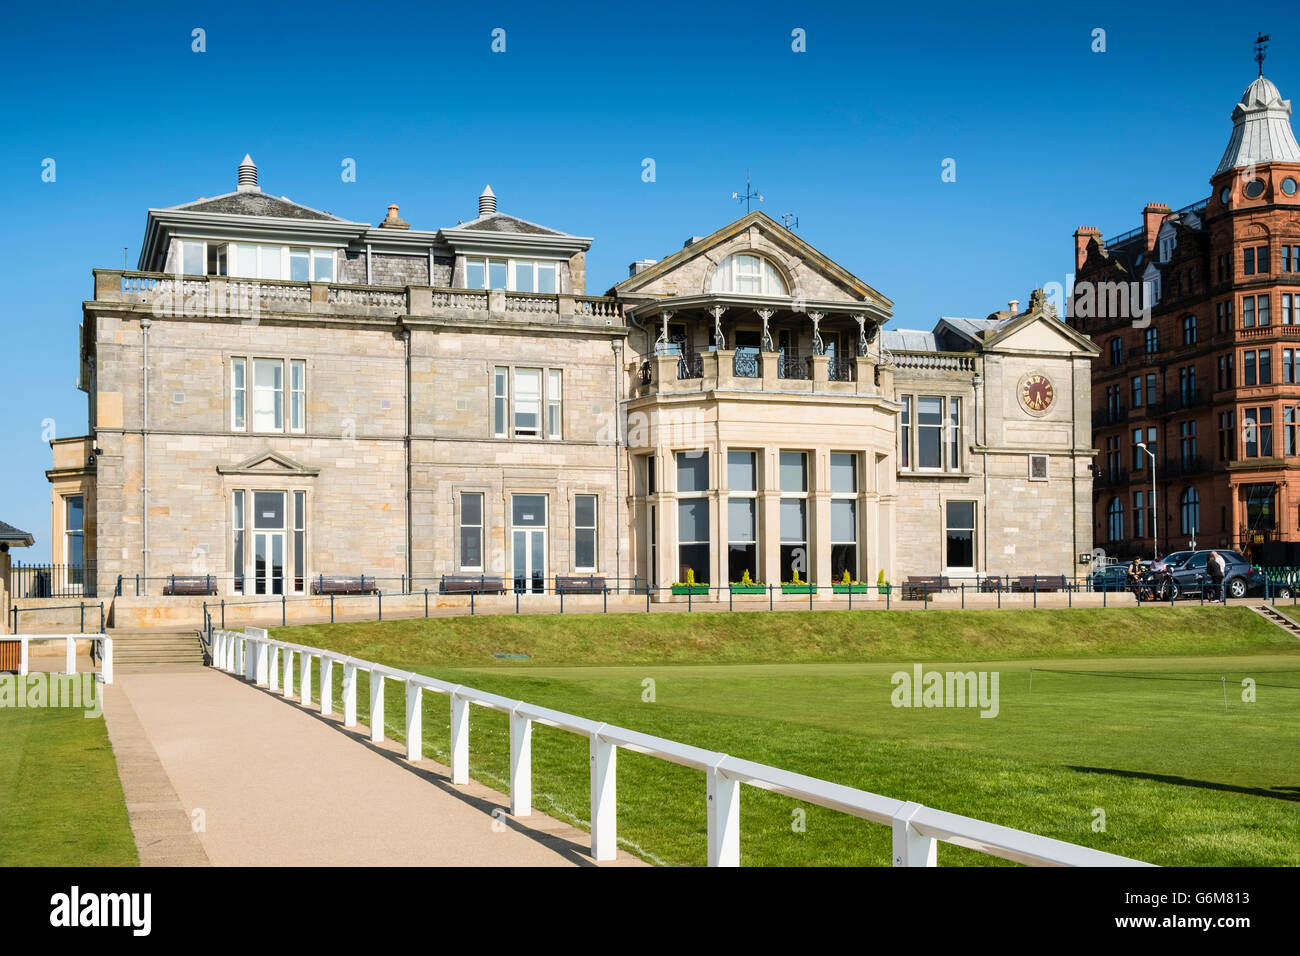 View of Royal and Ancient Clubhouse at the Old Course in St Andrews in Fife , Scotland, United Kingdom - Stock Image